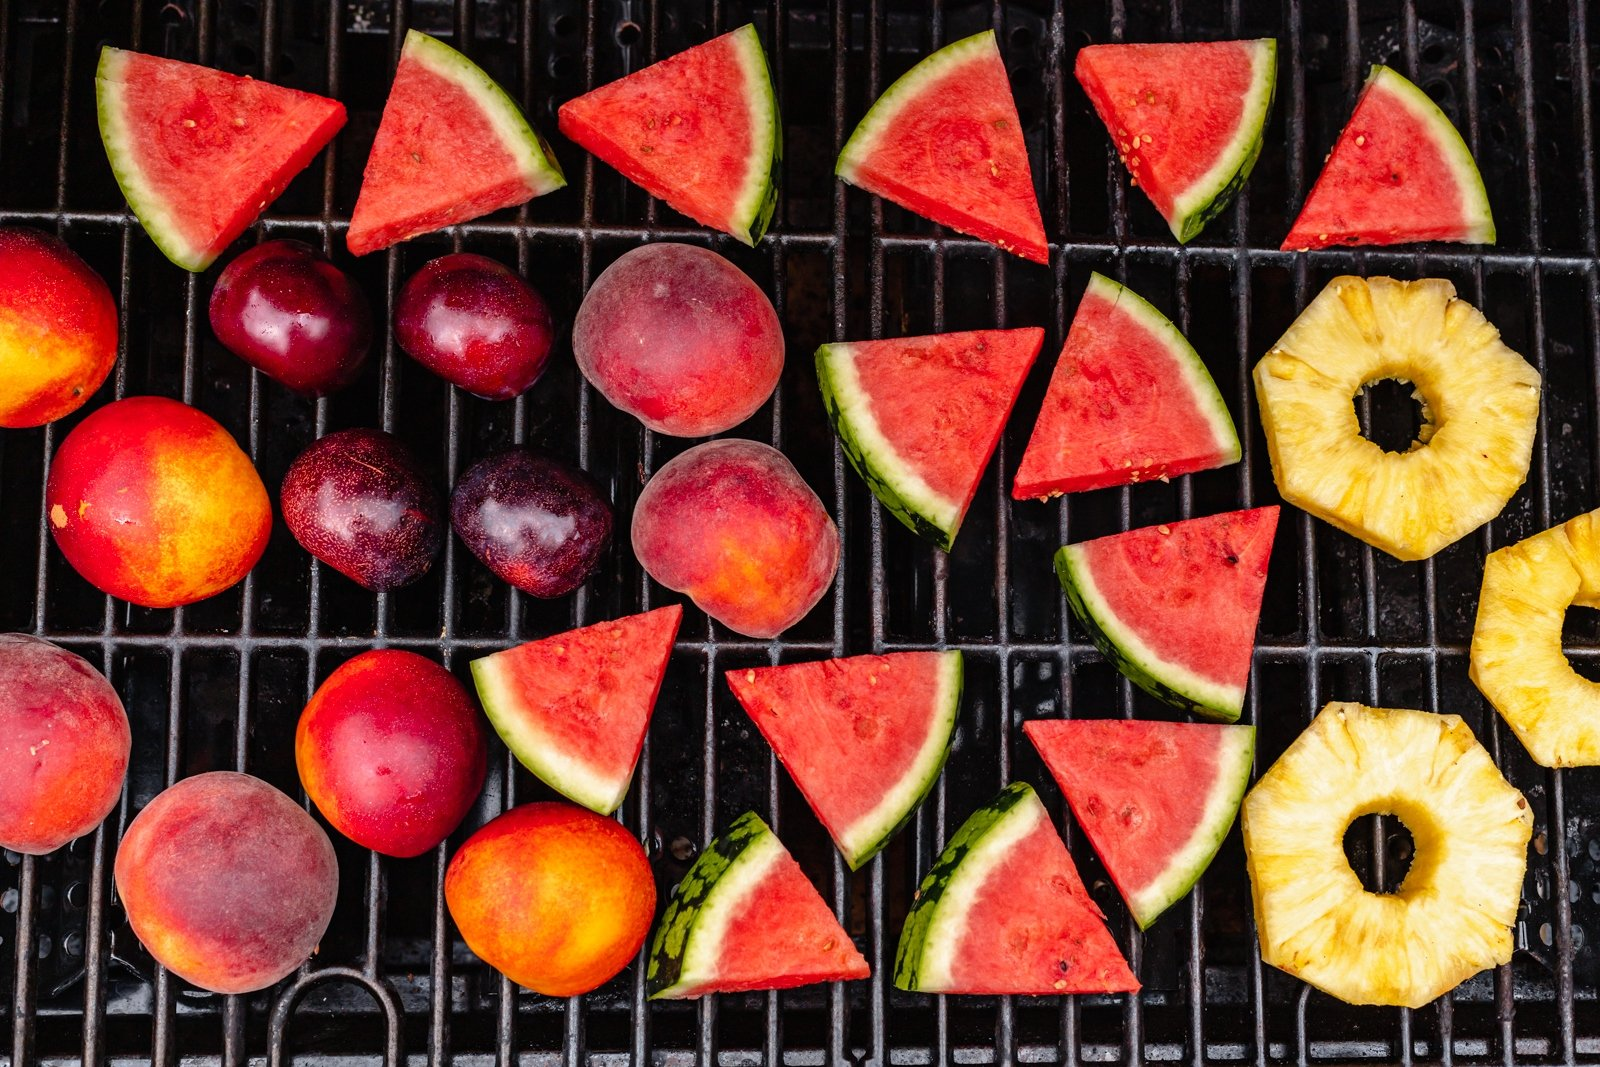 stone fruits, pineapple and watermelon on a grill